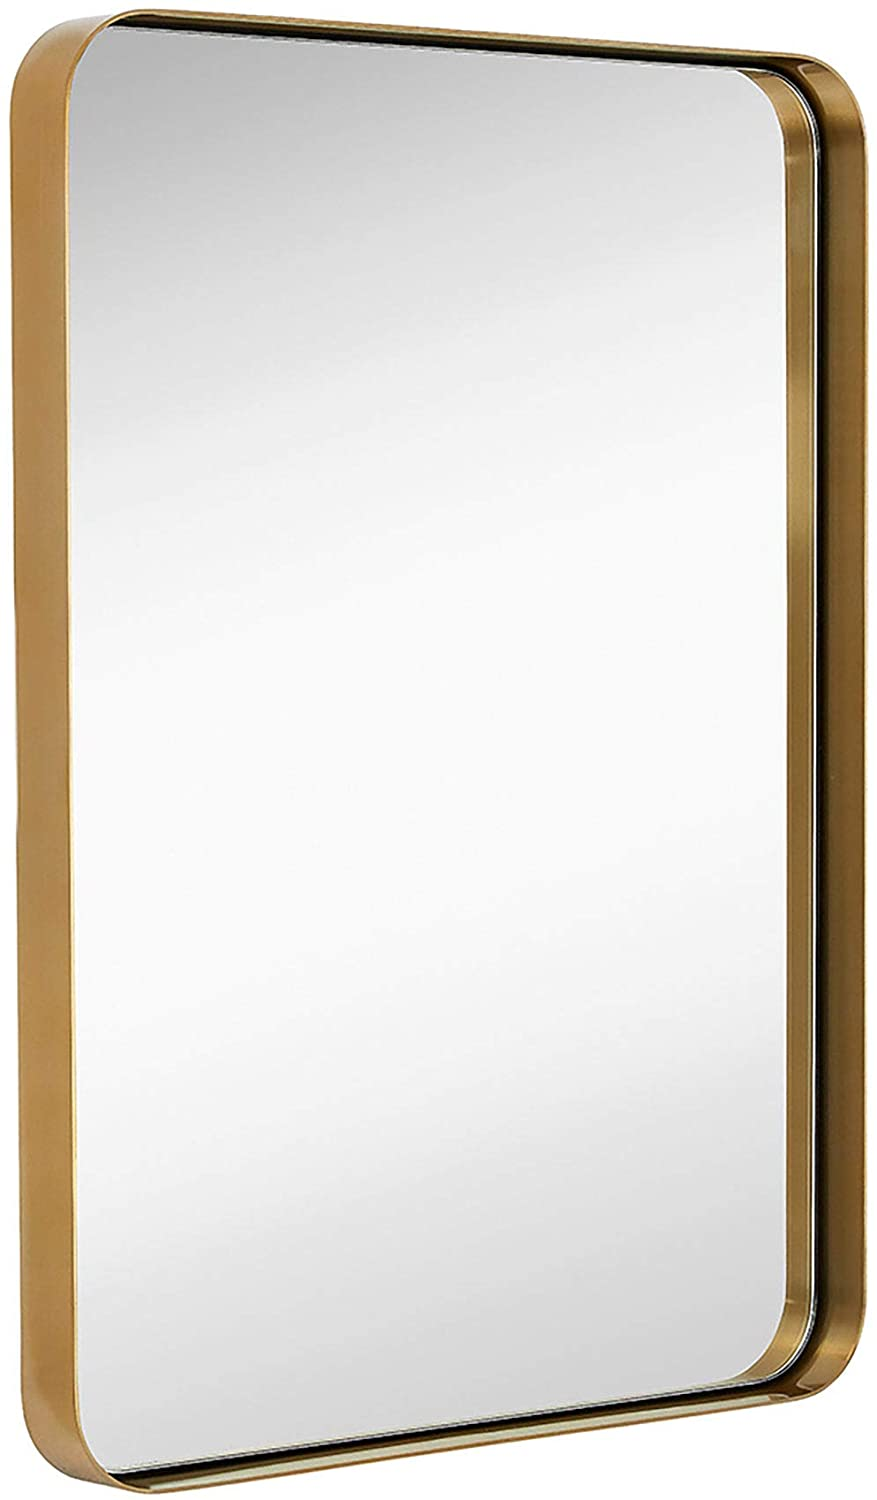 metal plated mirror gold powder room over vanity